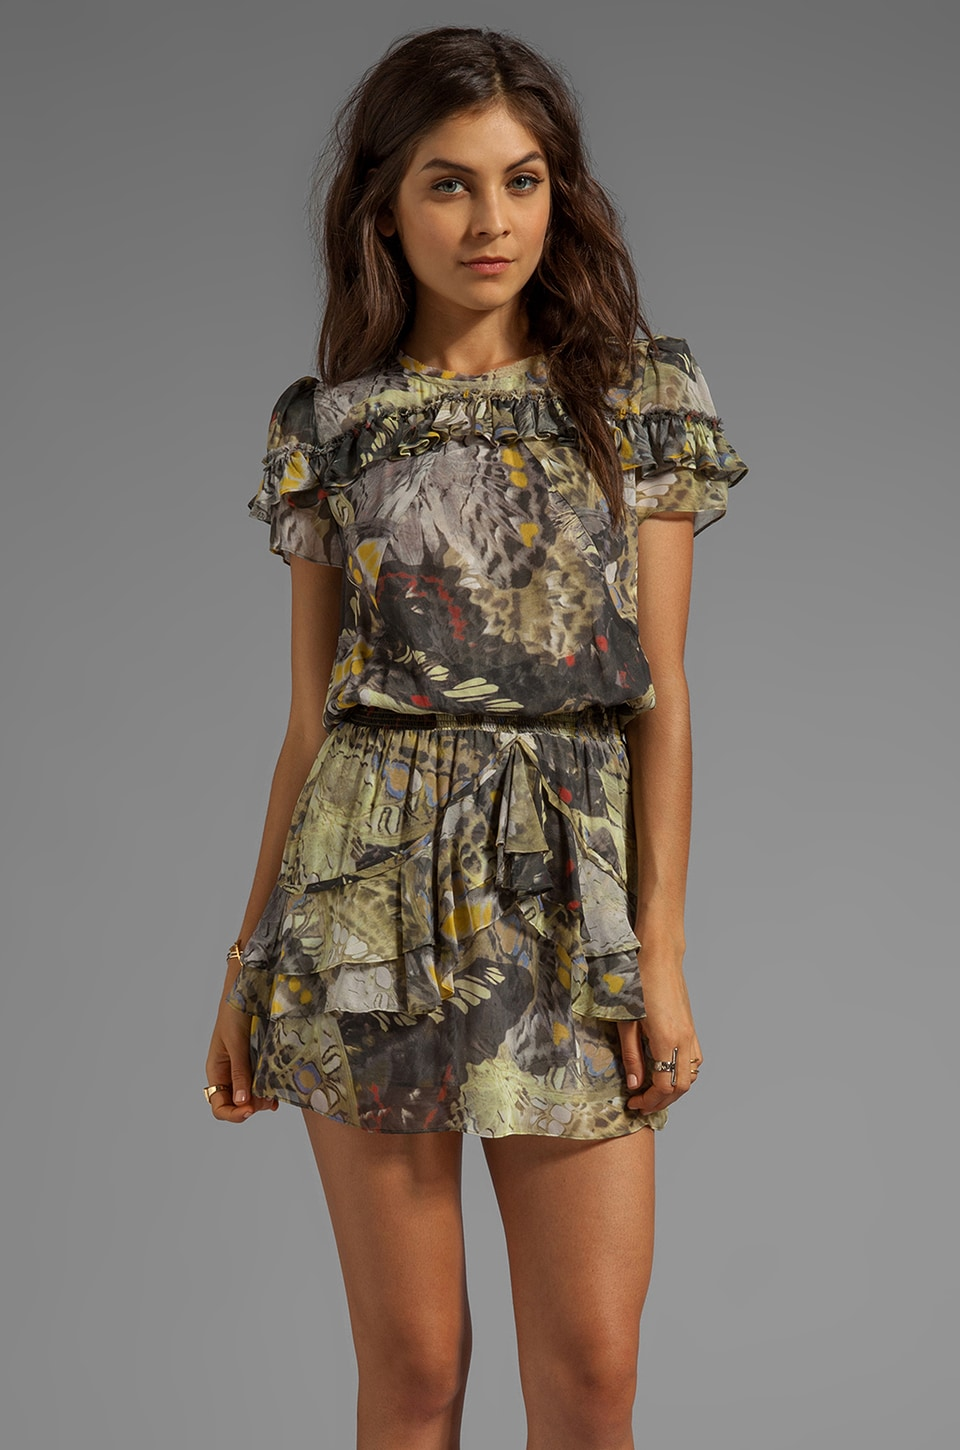 Skaist Taylor Printed Short Dress in Butterfly Print